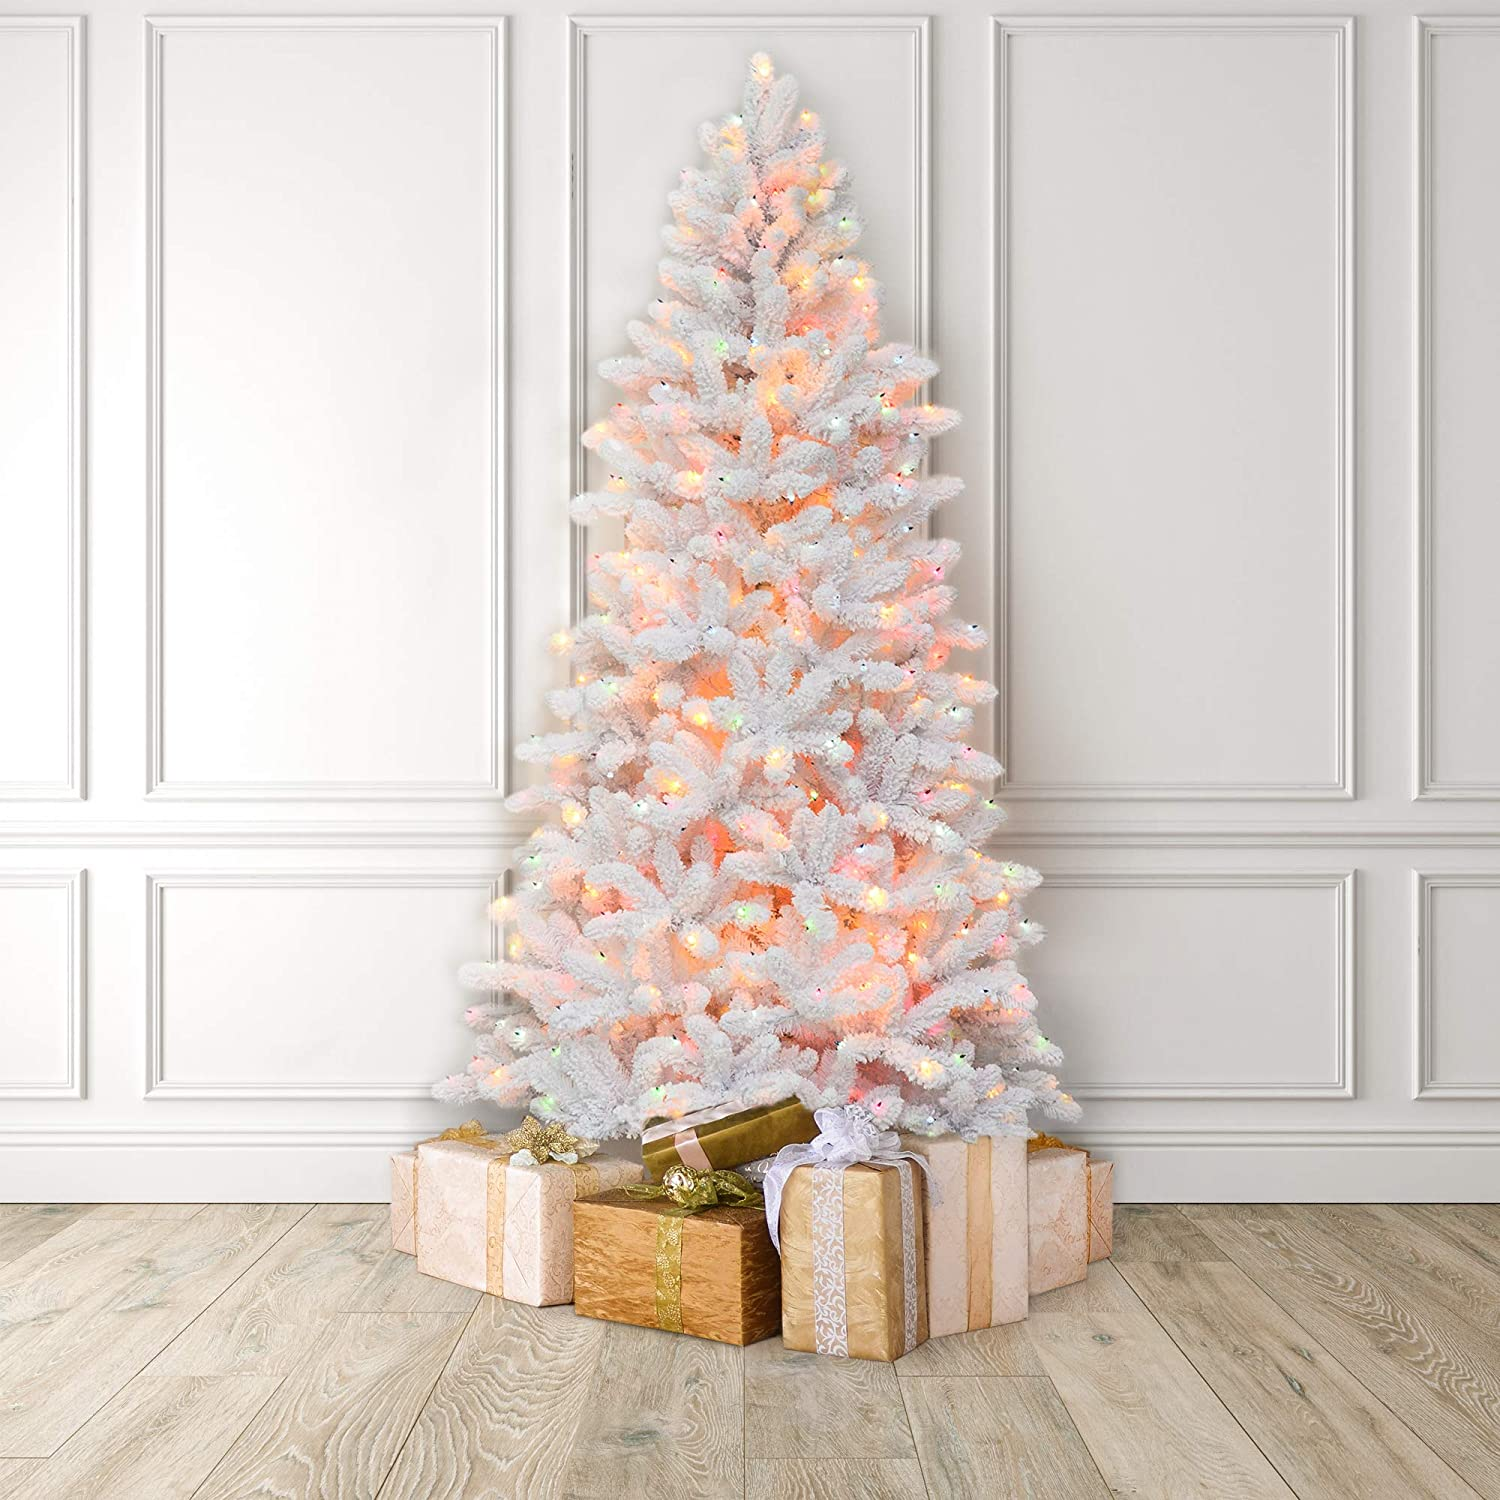 4-6 Ft Christmas White Birch Snow Tree w// LED Lights Outdoor Party Decor US 1PC